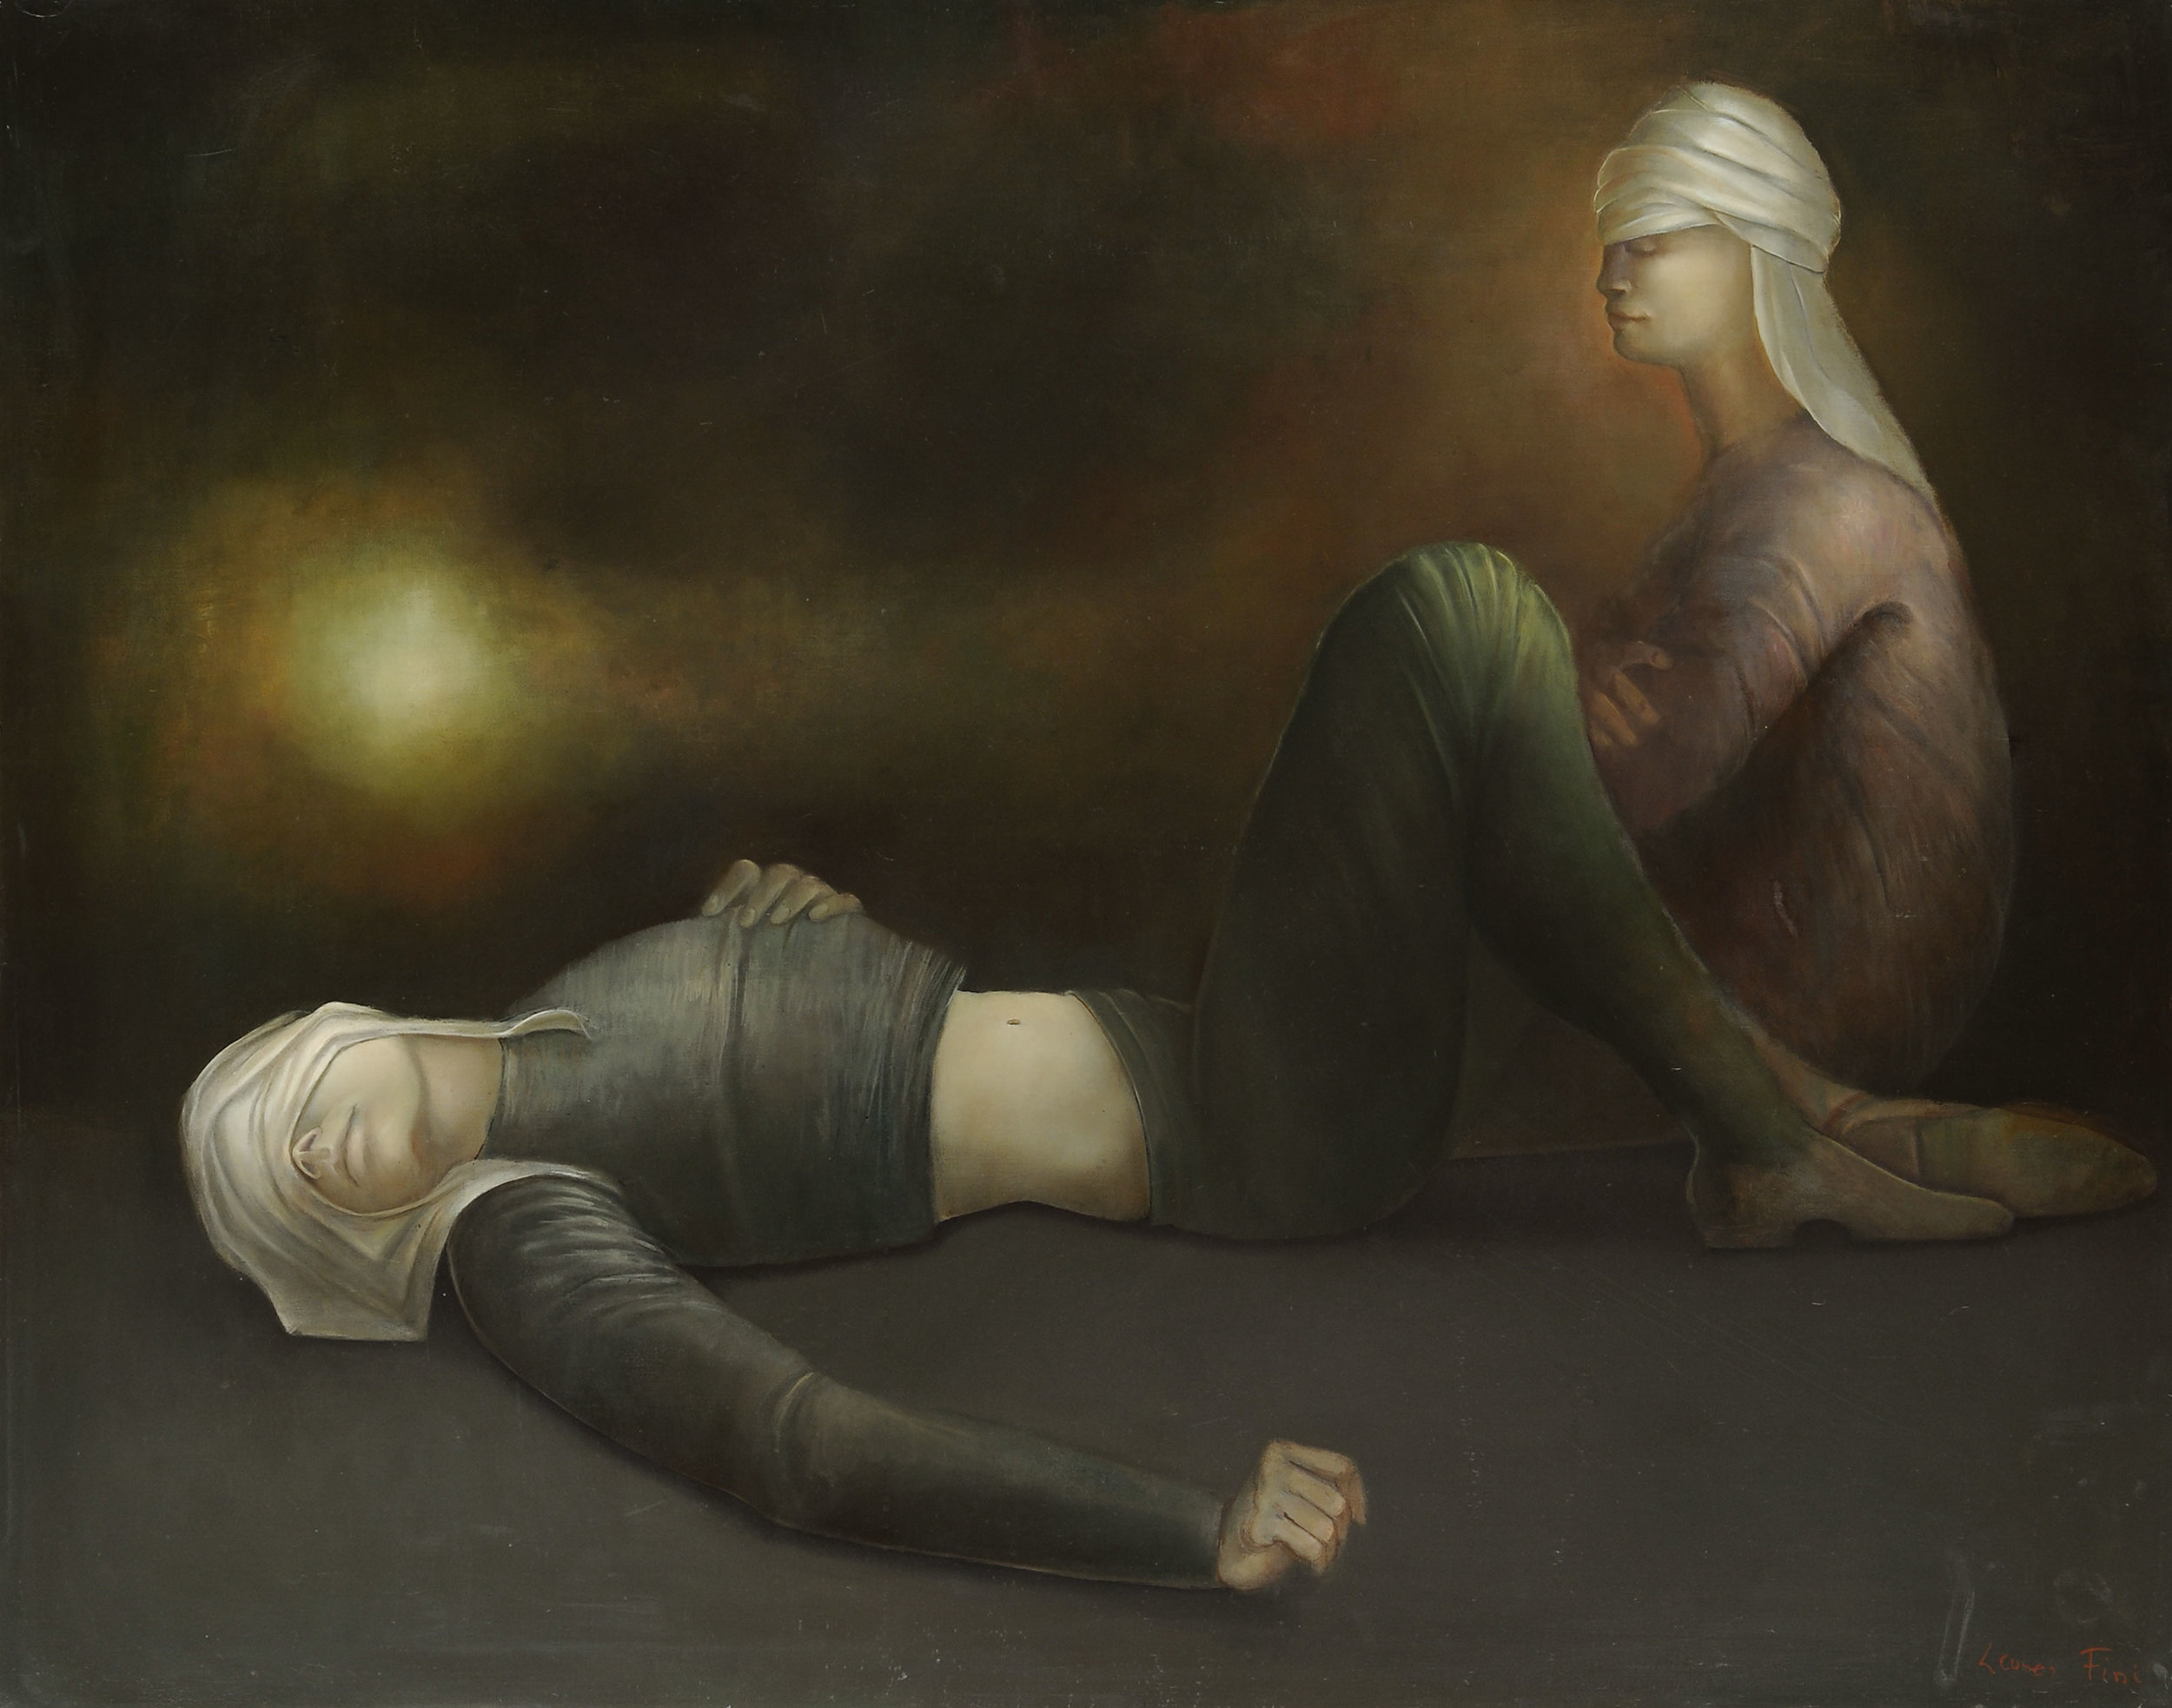 Voyageurs en repos (Travelers at Rest) , 1978, Oil on canvas, 26 1/2 x 33 1/2, $375,000